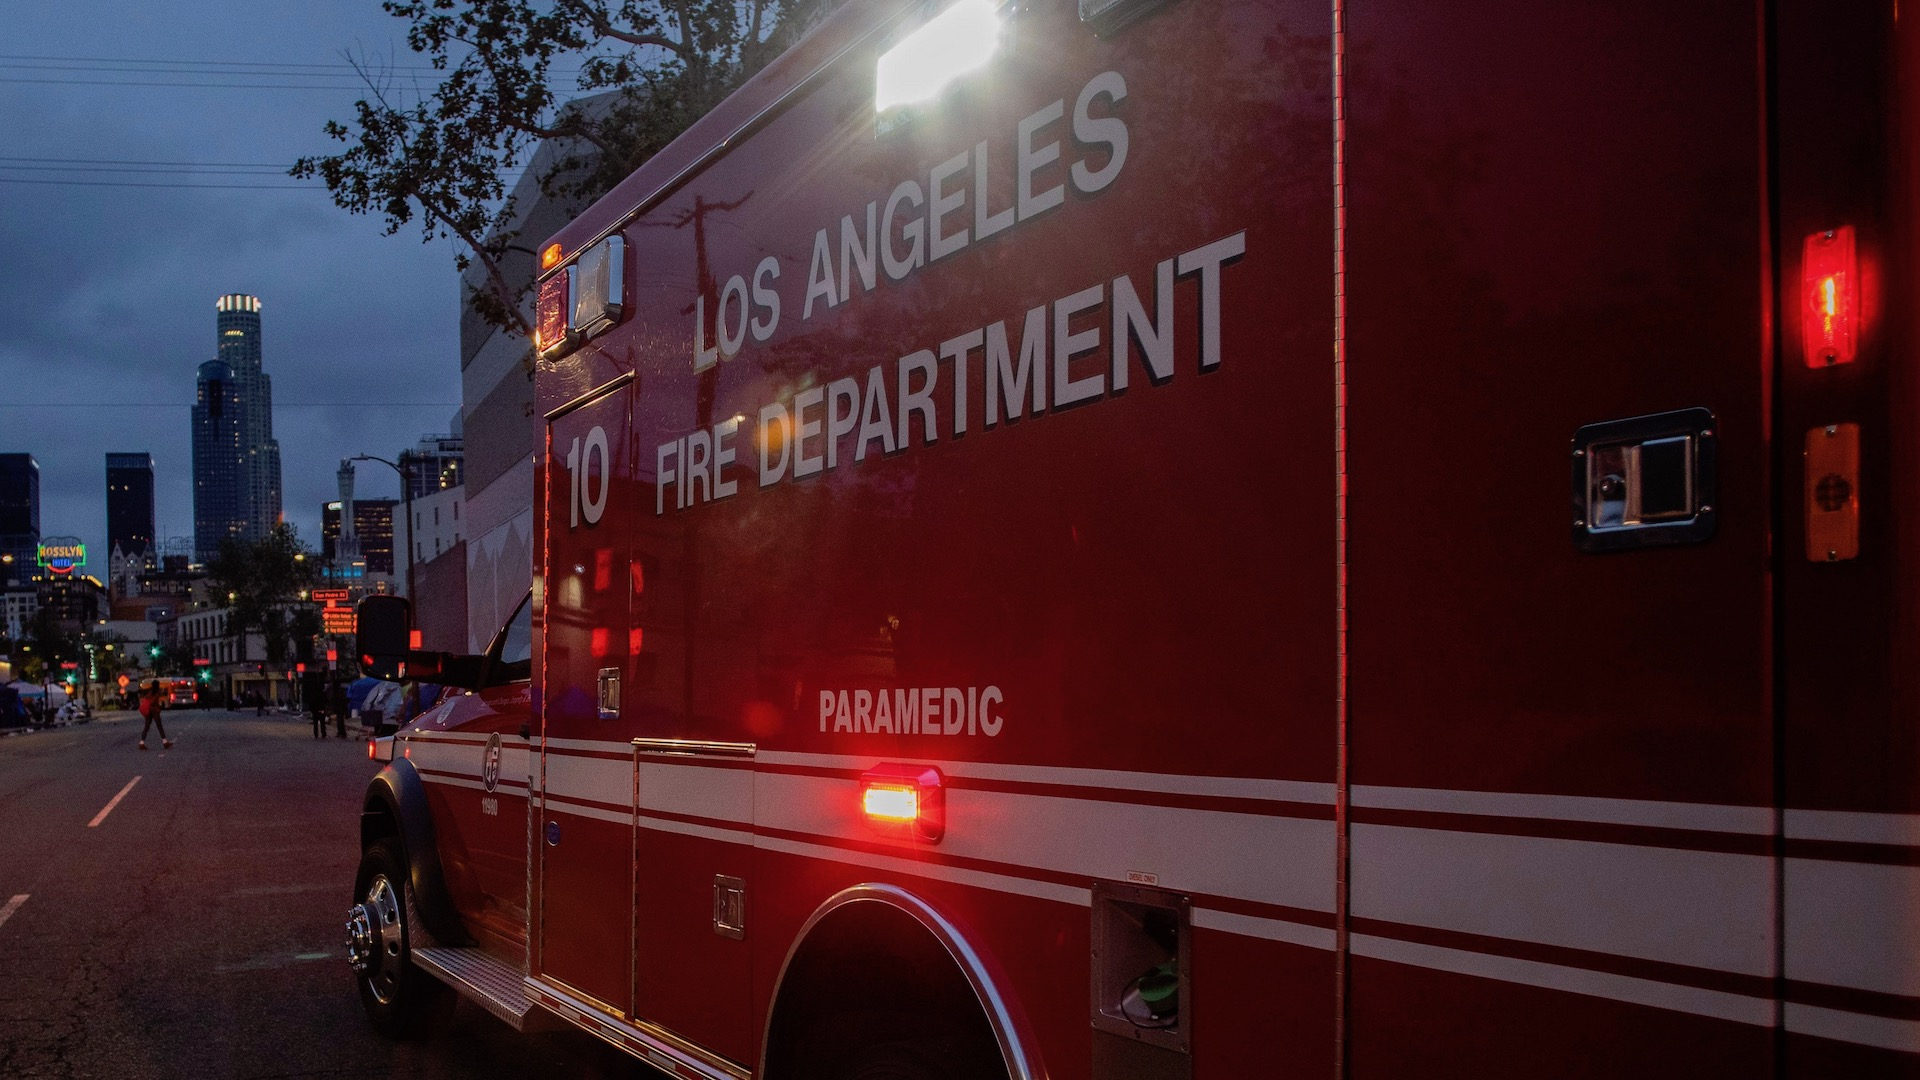 Explosion in Downtown Los Angeles Leaves Nearly a Dozen Firefighters Injured